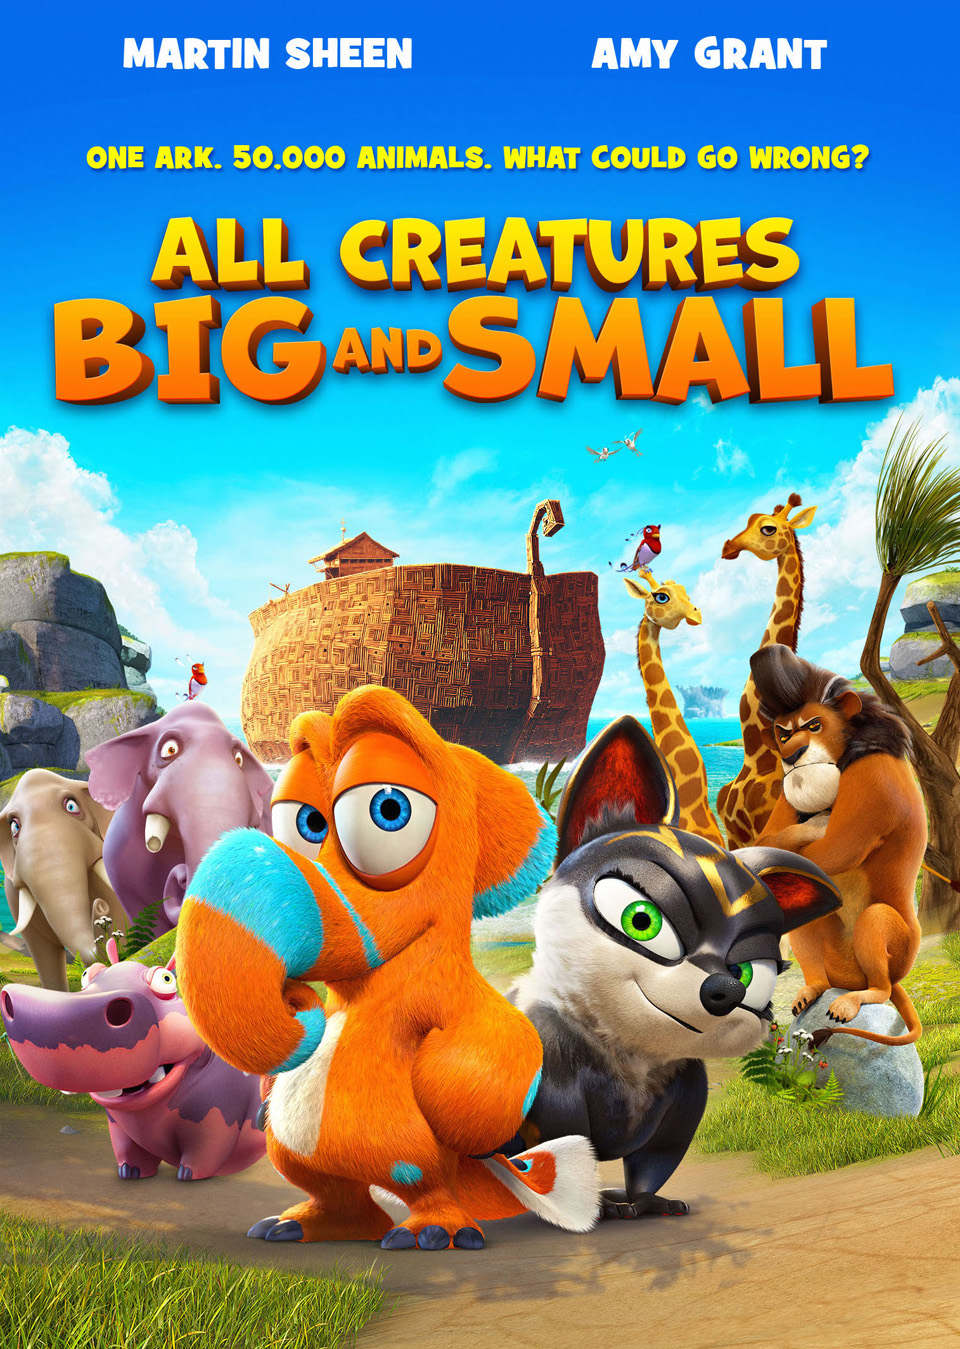 Exclusive Clip: 'All Creatures Big and Small' Now on Google Play ... Martinsheen